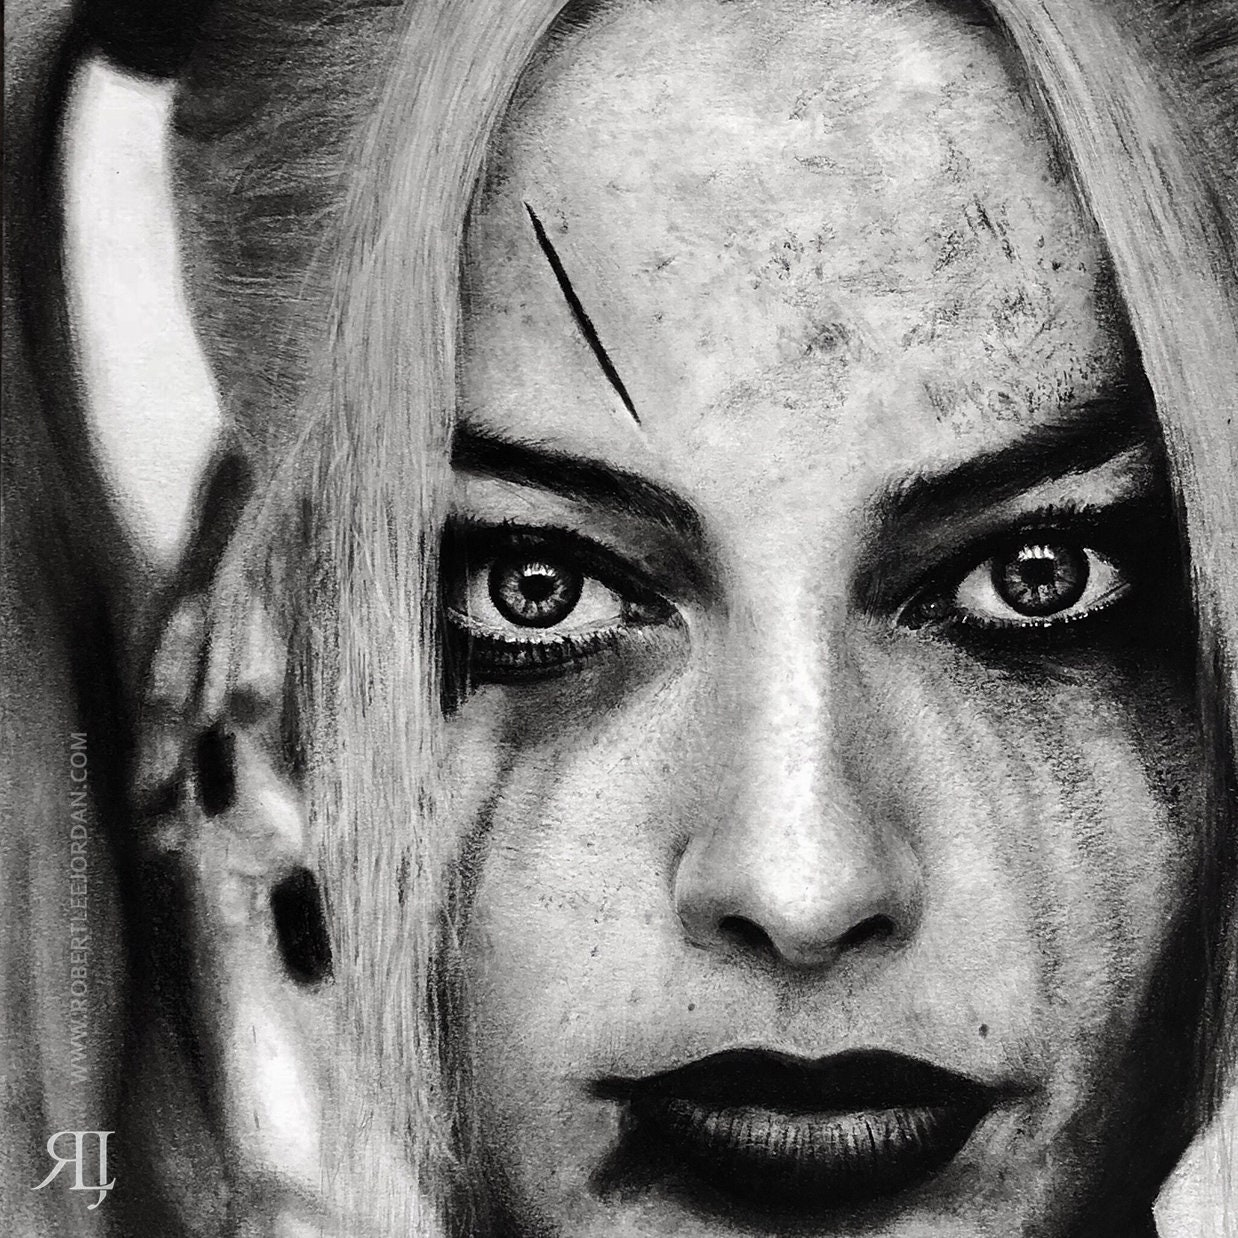 Harley quinn realistic pencil portrait black and white